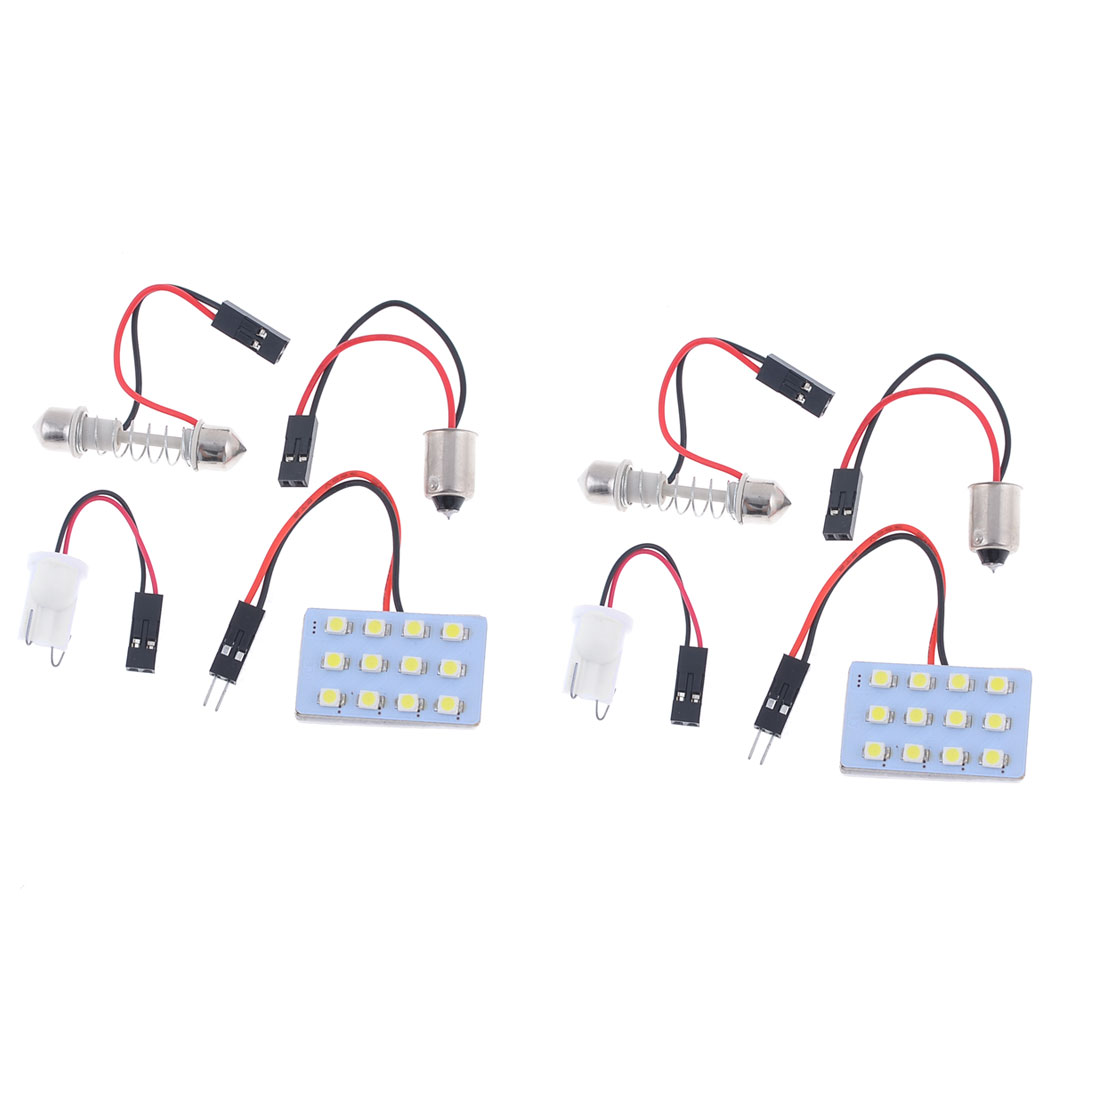 2 x DC 12V White 1210 SMD 12-LED Dome Light Lamp Panel w T10 Festoon Adapter